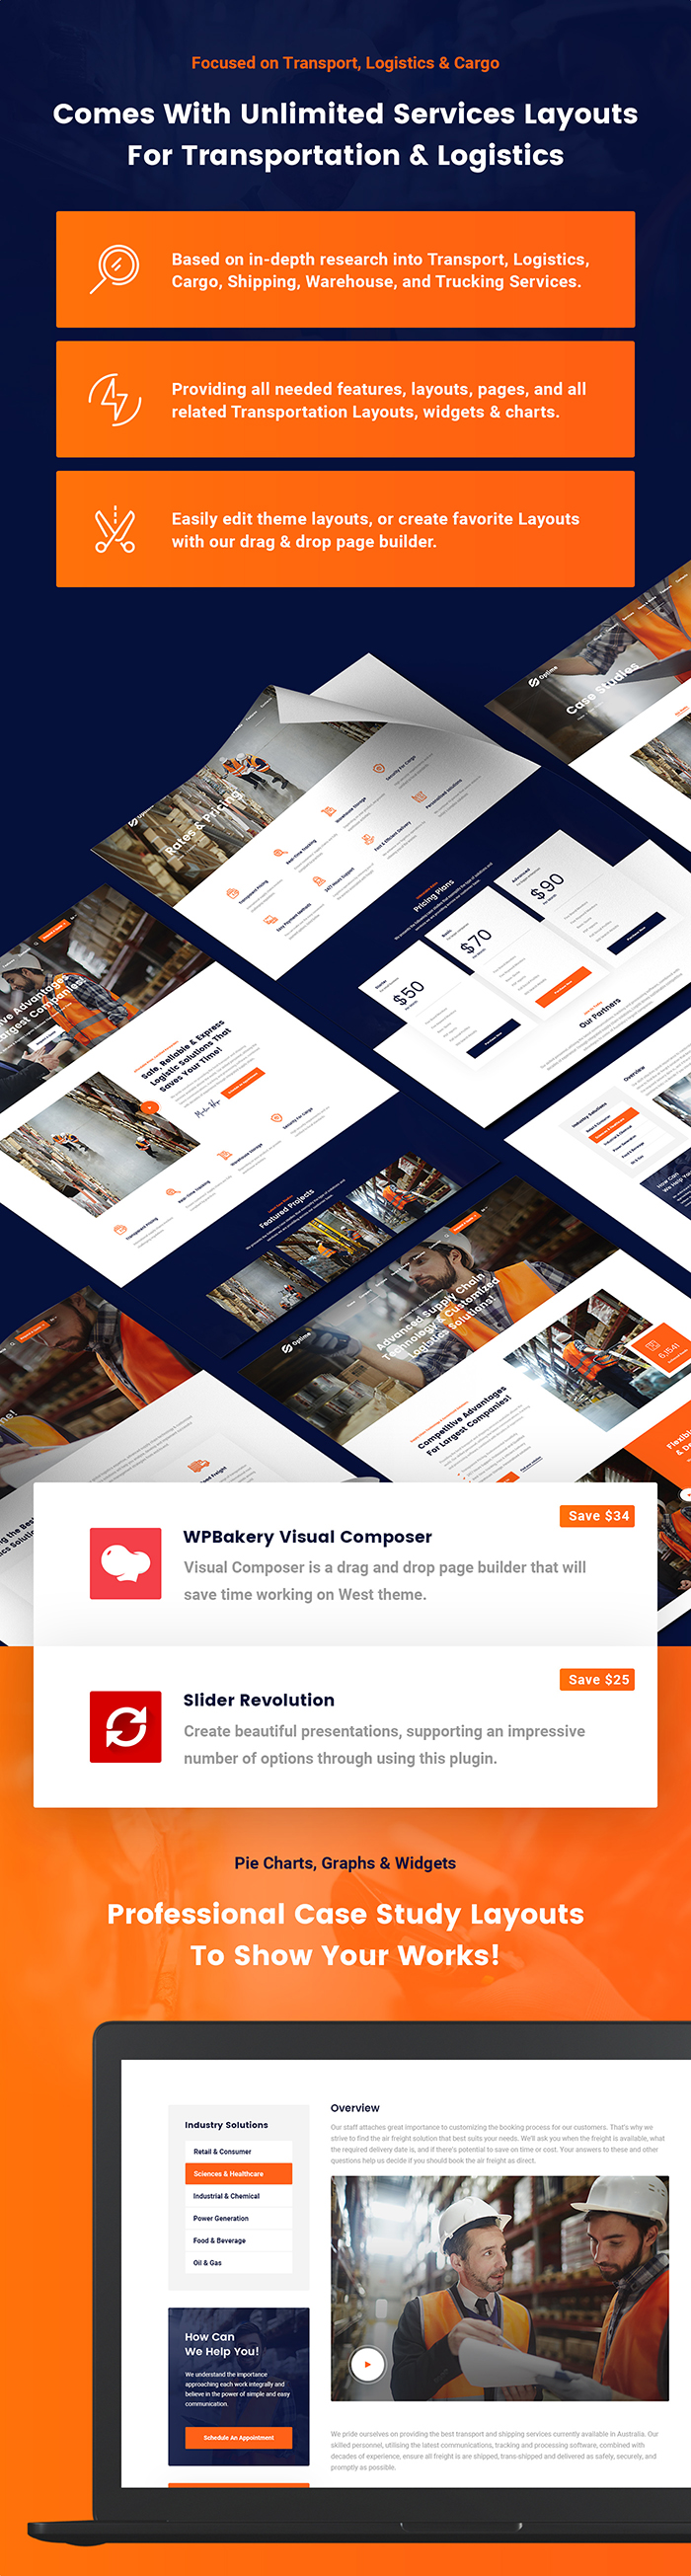 Optime - Logistics & Transportation WordPress Theme - 6